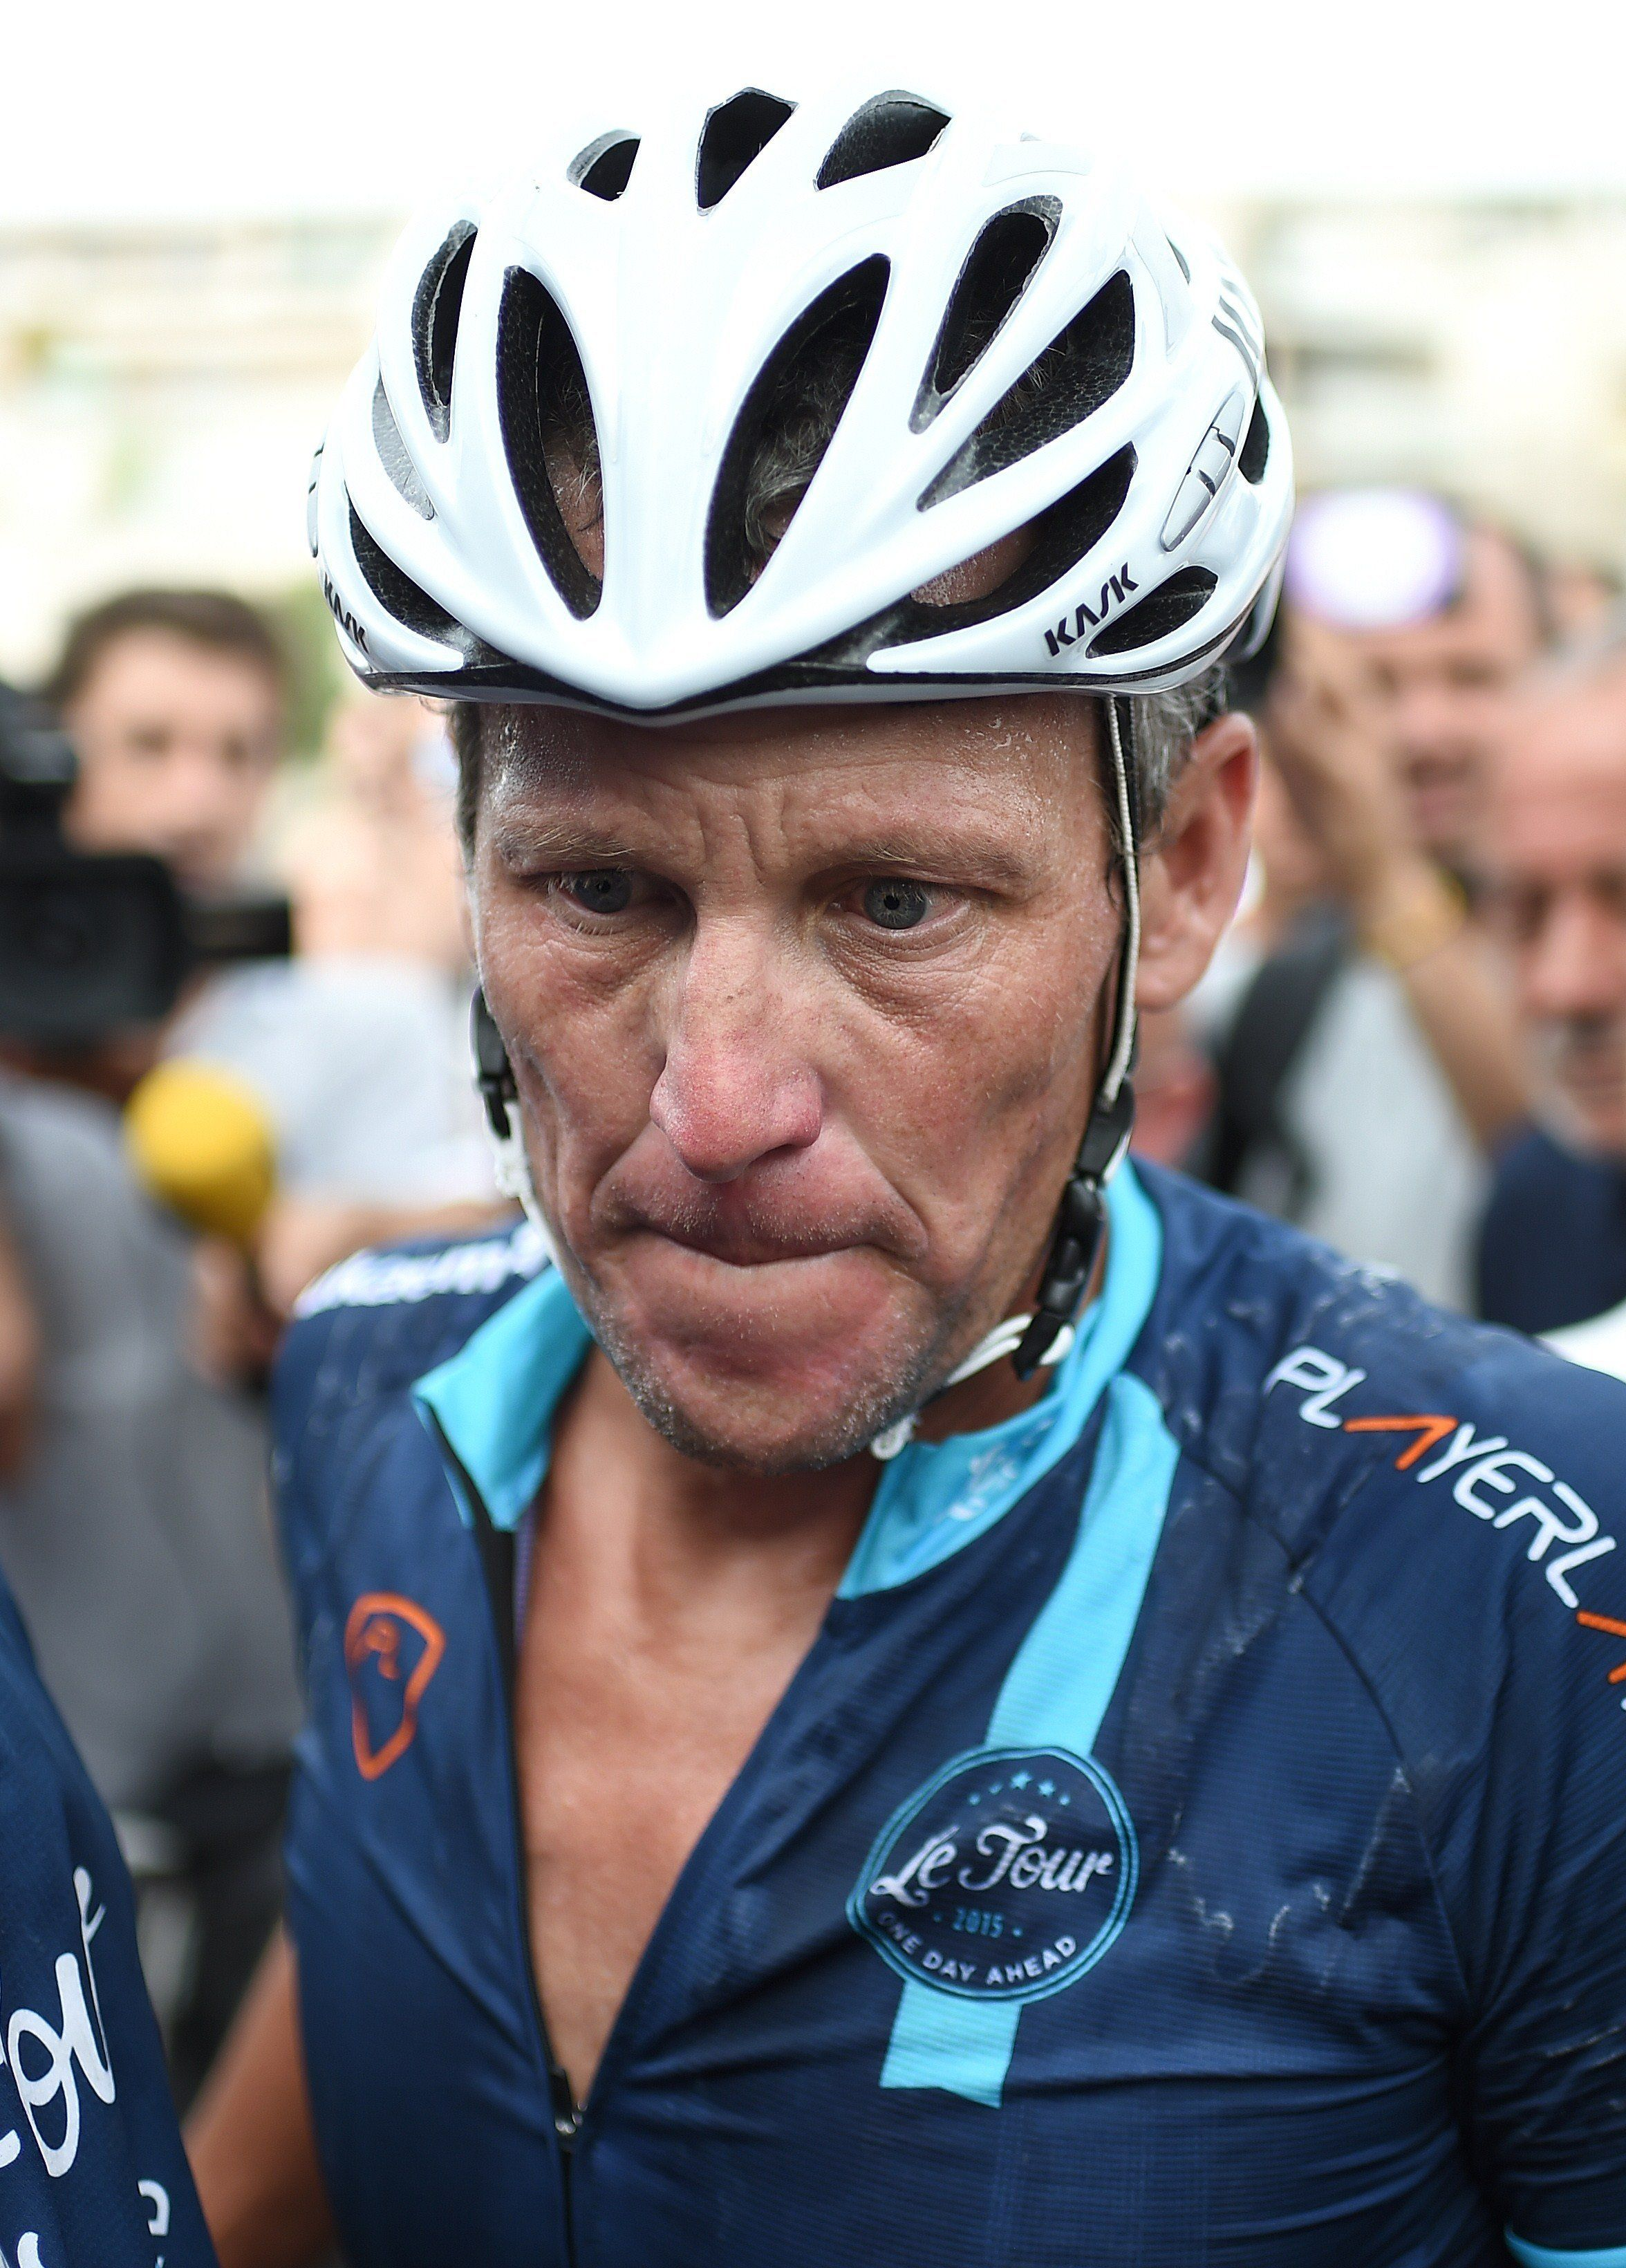 US cyclist Lance Armstrong looks on upon his arrival in Rodez, southwest France, after riding a stage  of The Tour De France for a leukaemia charity, a day ahead of the competing riders, on July 16, 2015. For the first time since he was stripped of his seven Tour de France titles, disgraced cyclist Lance Armstrong rode a stage of the famous race for charity. Armstrong, 43, was riding a 198-kilometre (123-mile) stage a day ahead of the competing riders for a leukaemia charity but cycling officials have branded the exercise 'disrespectful'. AFP PHOTO / STEPHANE DE SAKUTIN        (Photo credit should read STEPHANE DE SAKUTIN/AFP/Getty Images)